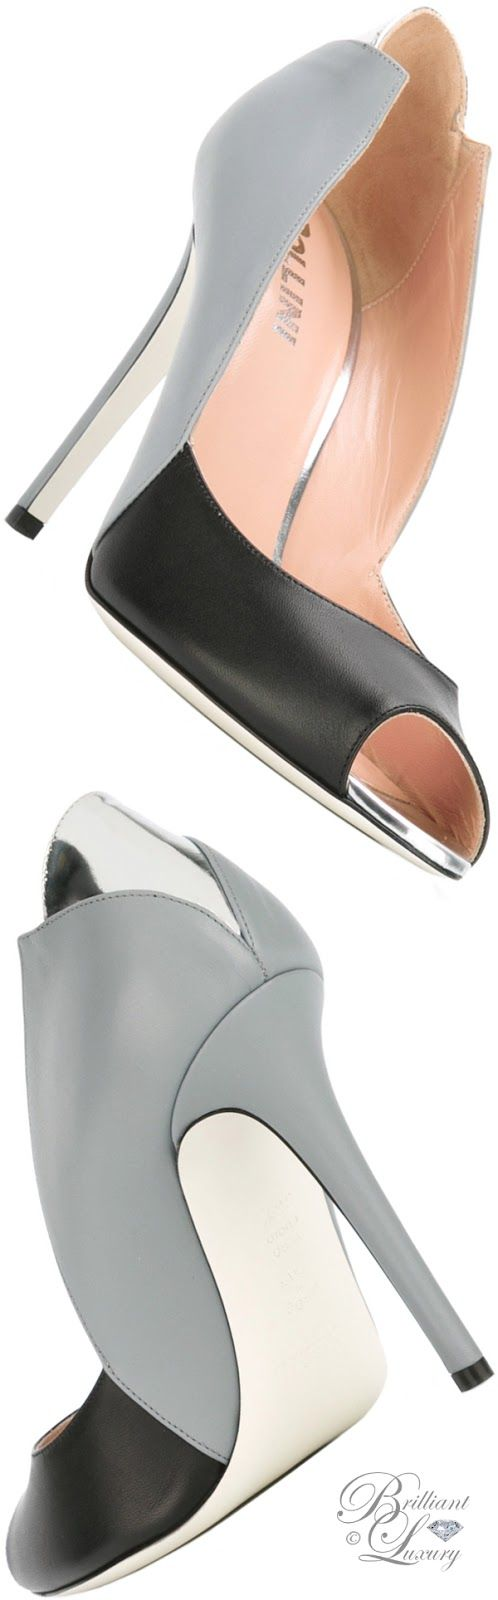 Brilliant Luxury by Emmy DE ♦ Pollini Contrast Sandals